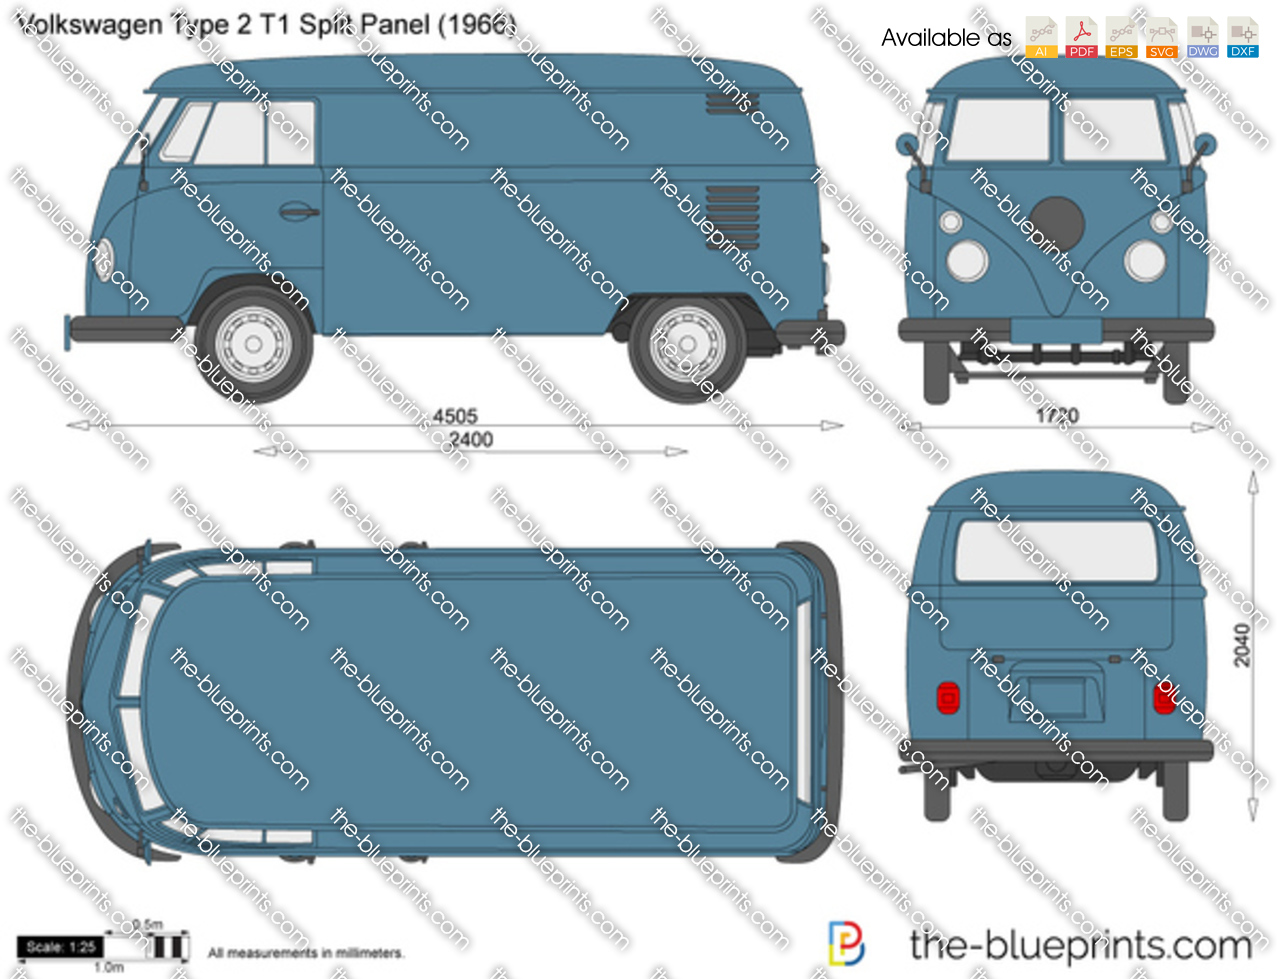 Volkswagen Type 2 T1 Split Panel 1952